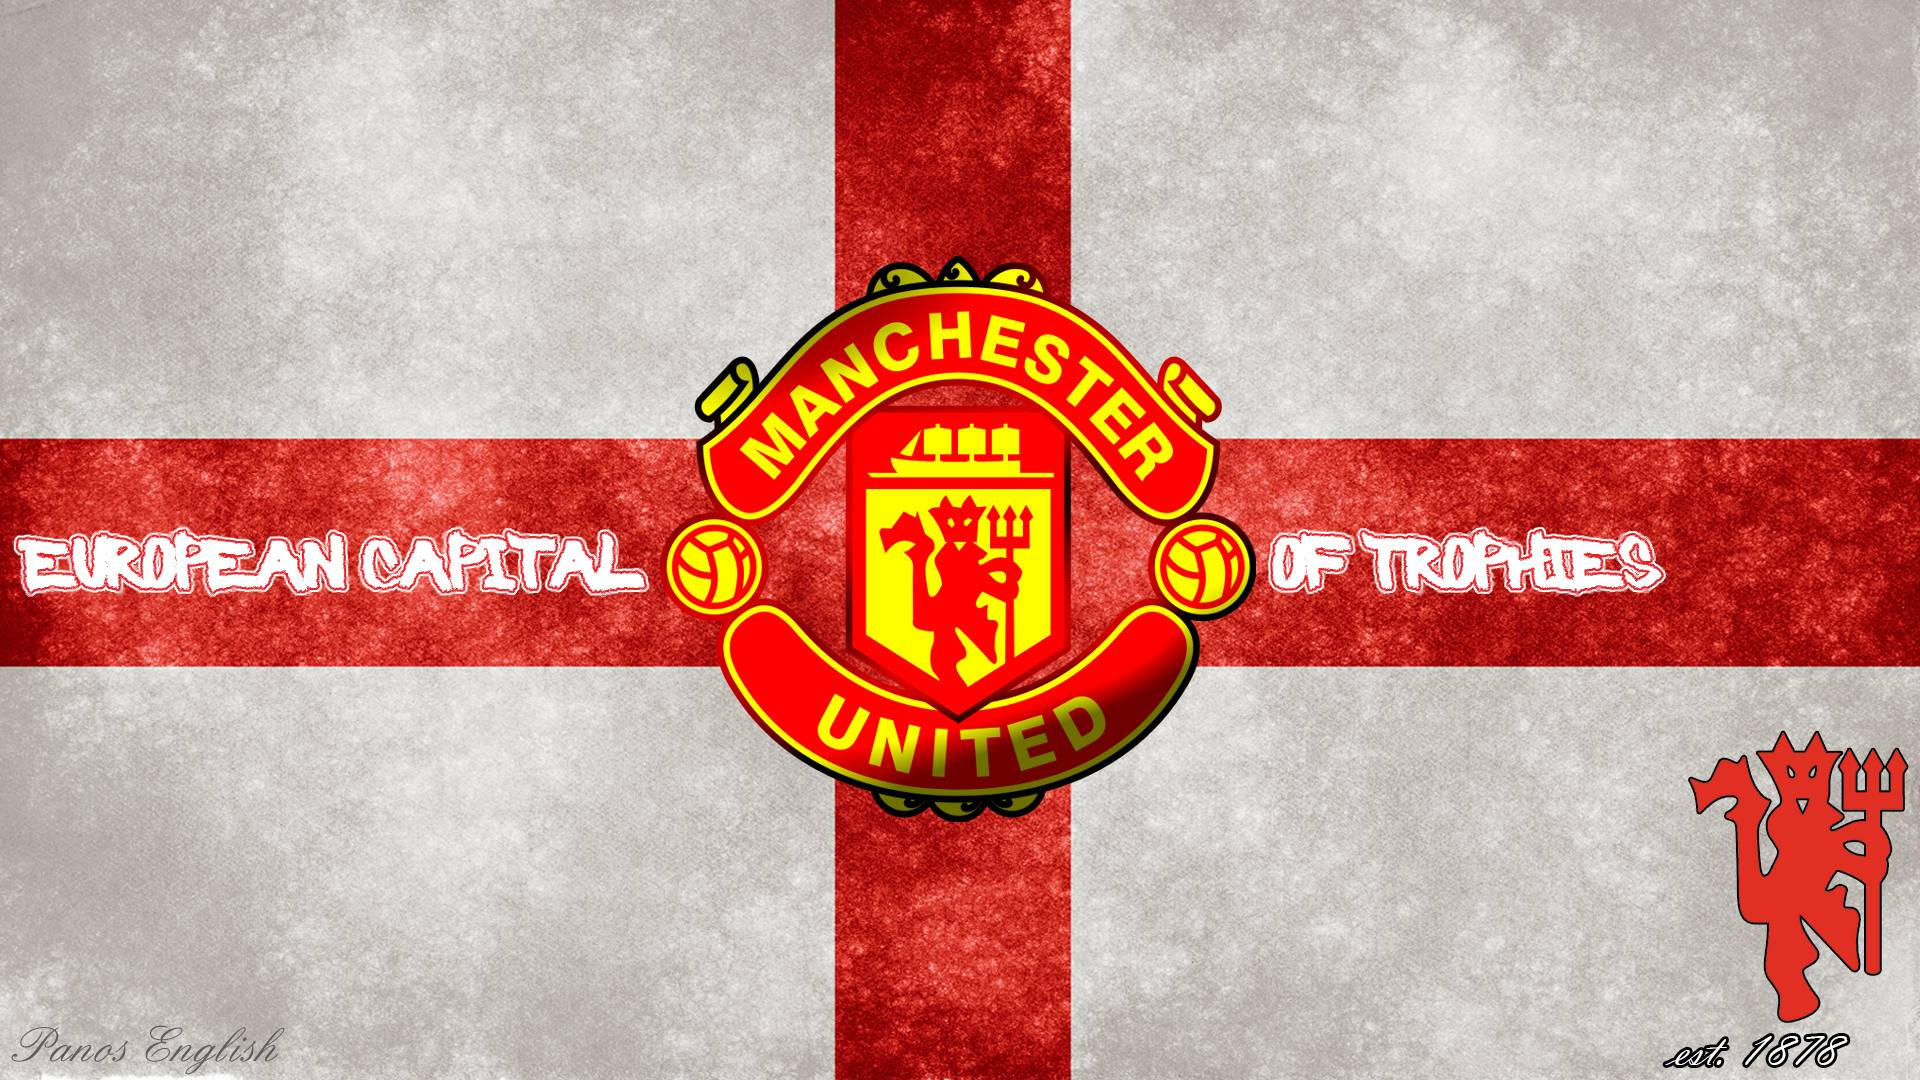 football clubs manchester united wallpapers 4530 131 wallpaper id 1737 1920x1080